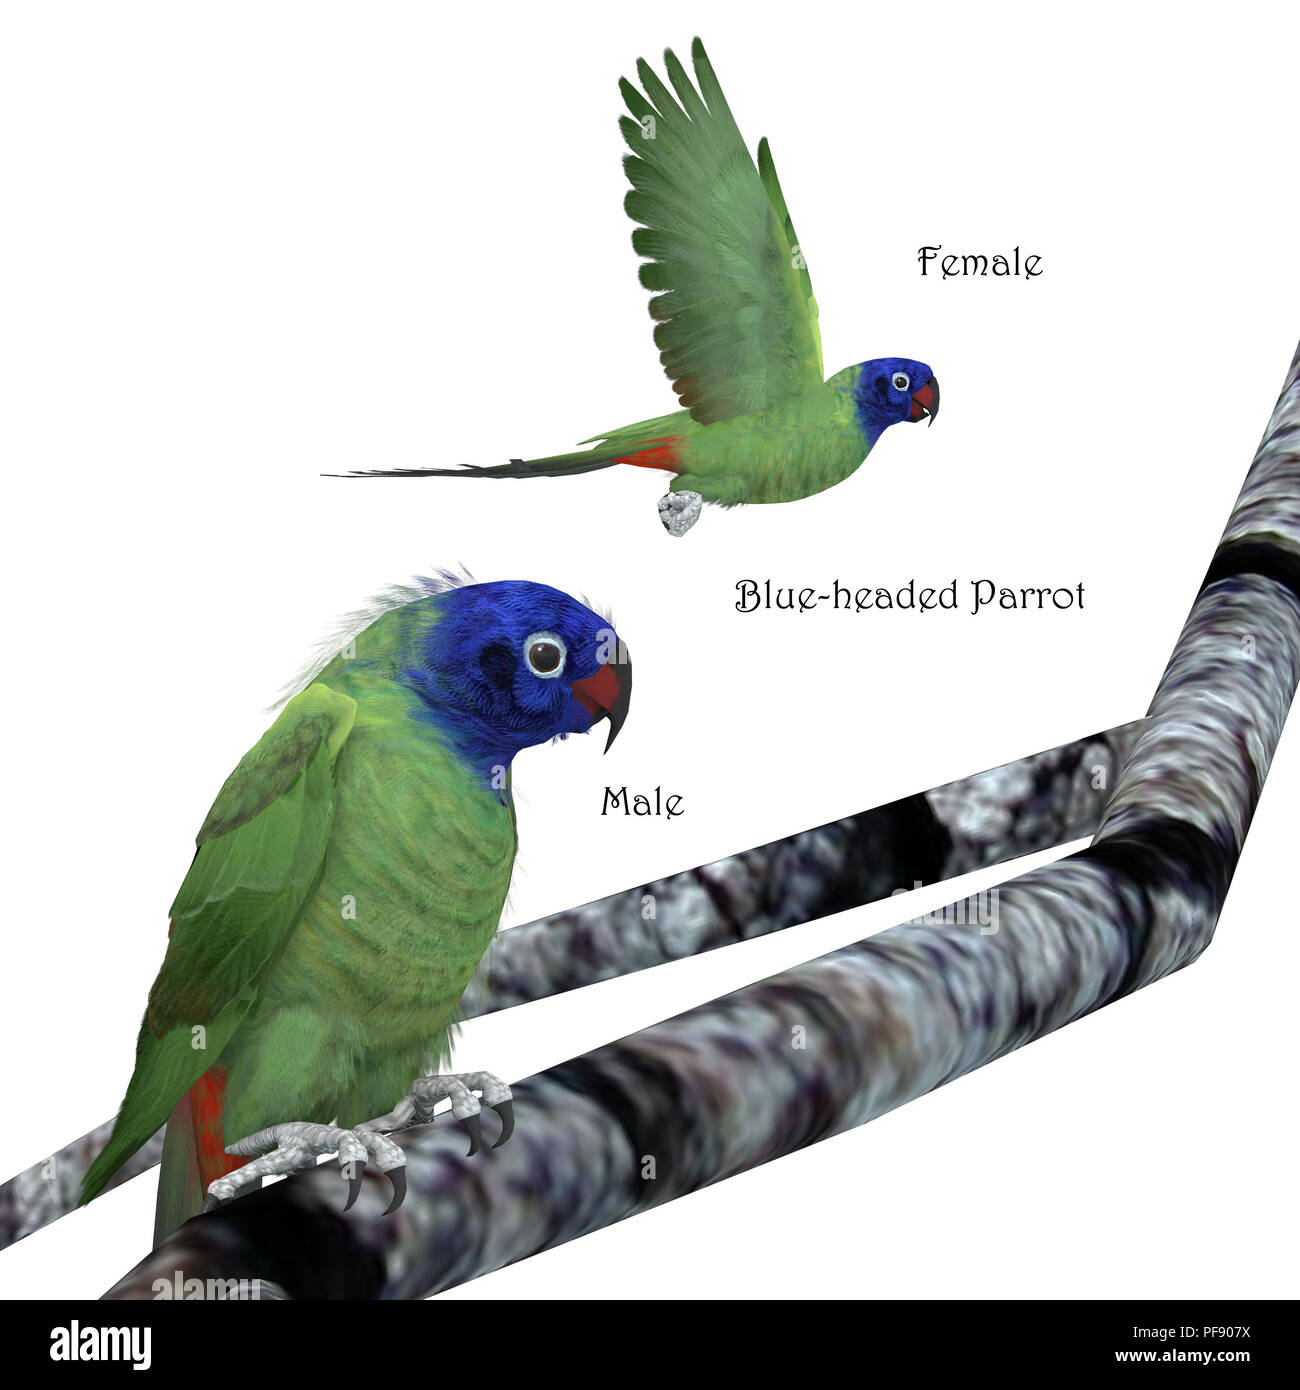 Blue-headed Parrot - The Blue-headed parrot is a noisy bird from Central and South America and eats fruits and seeds. - Stock Image